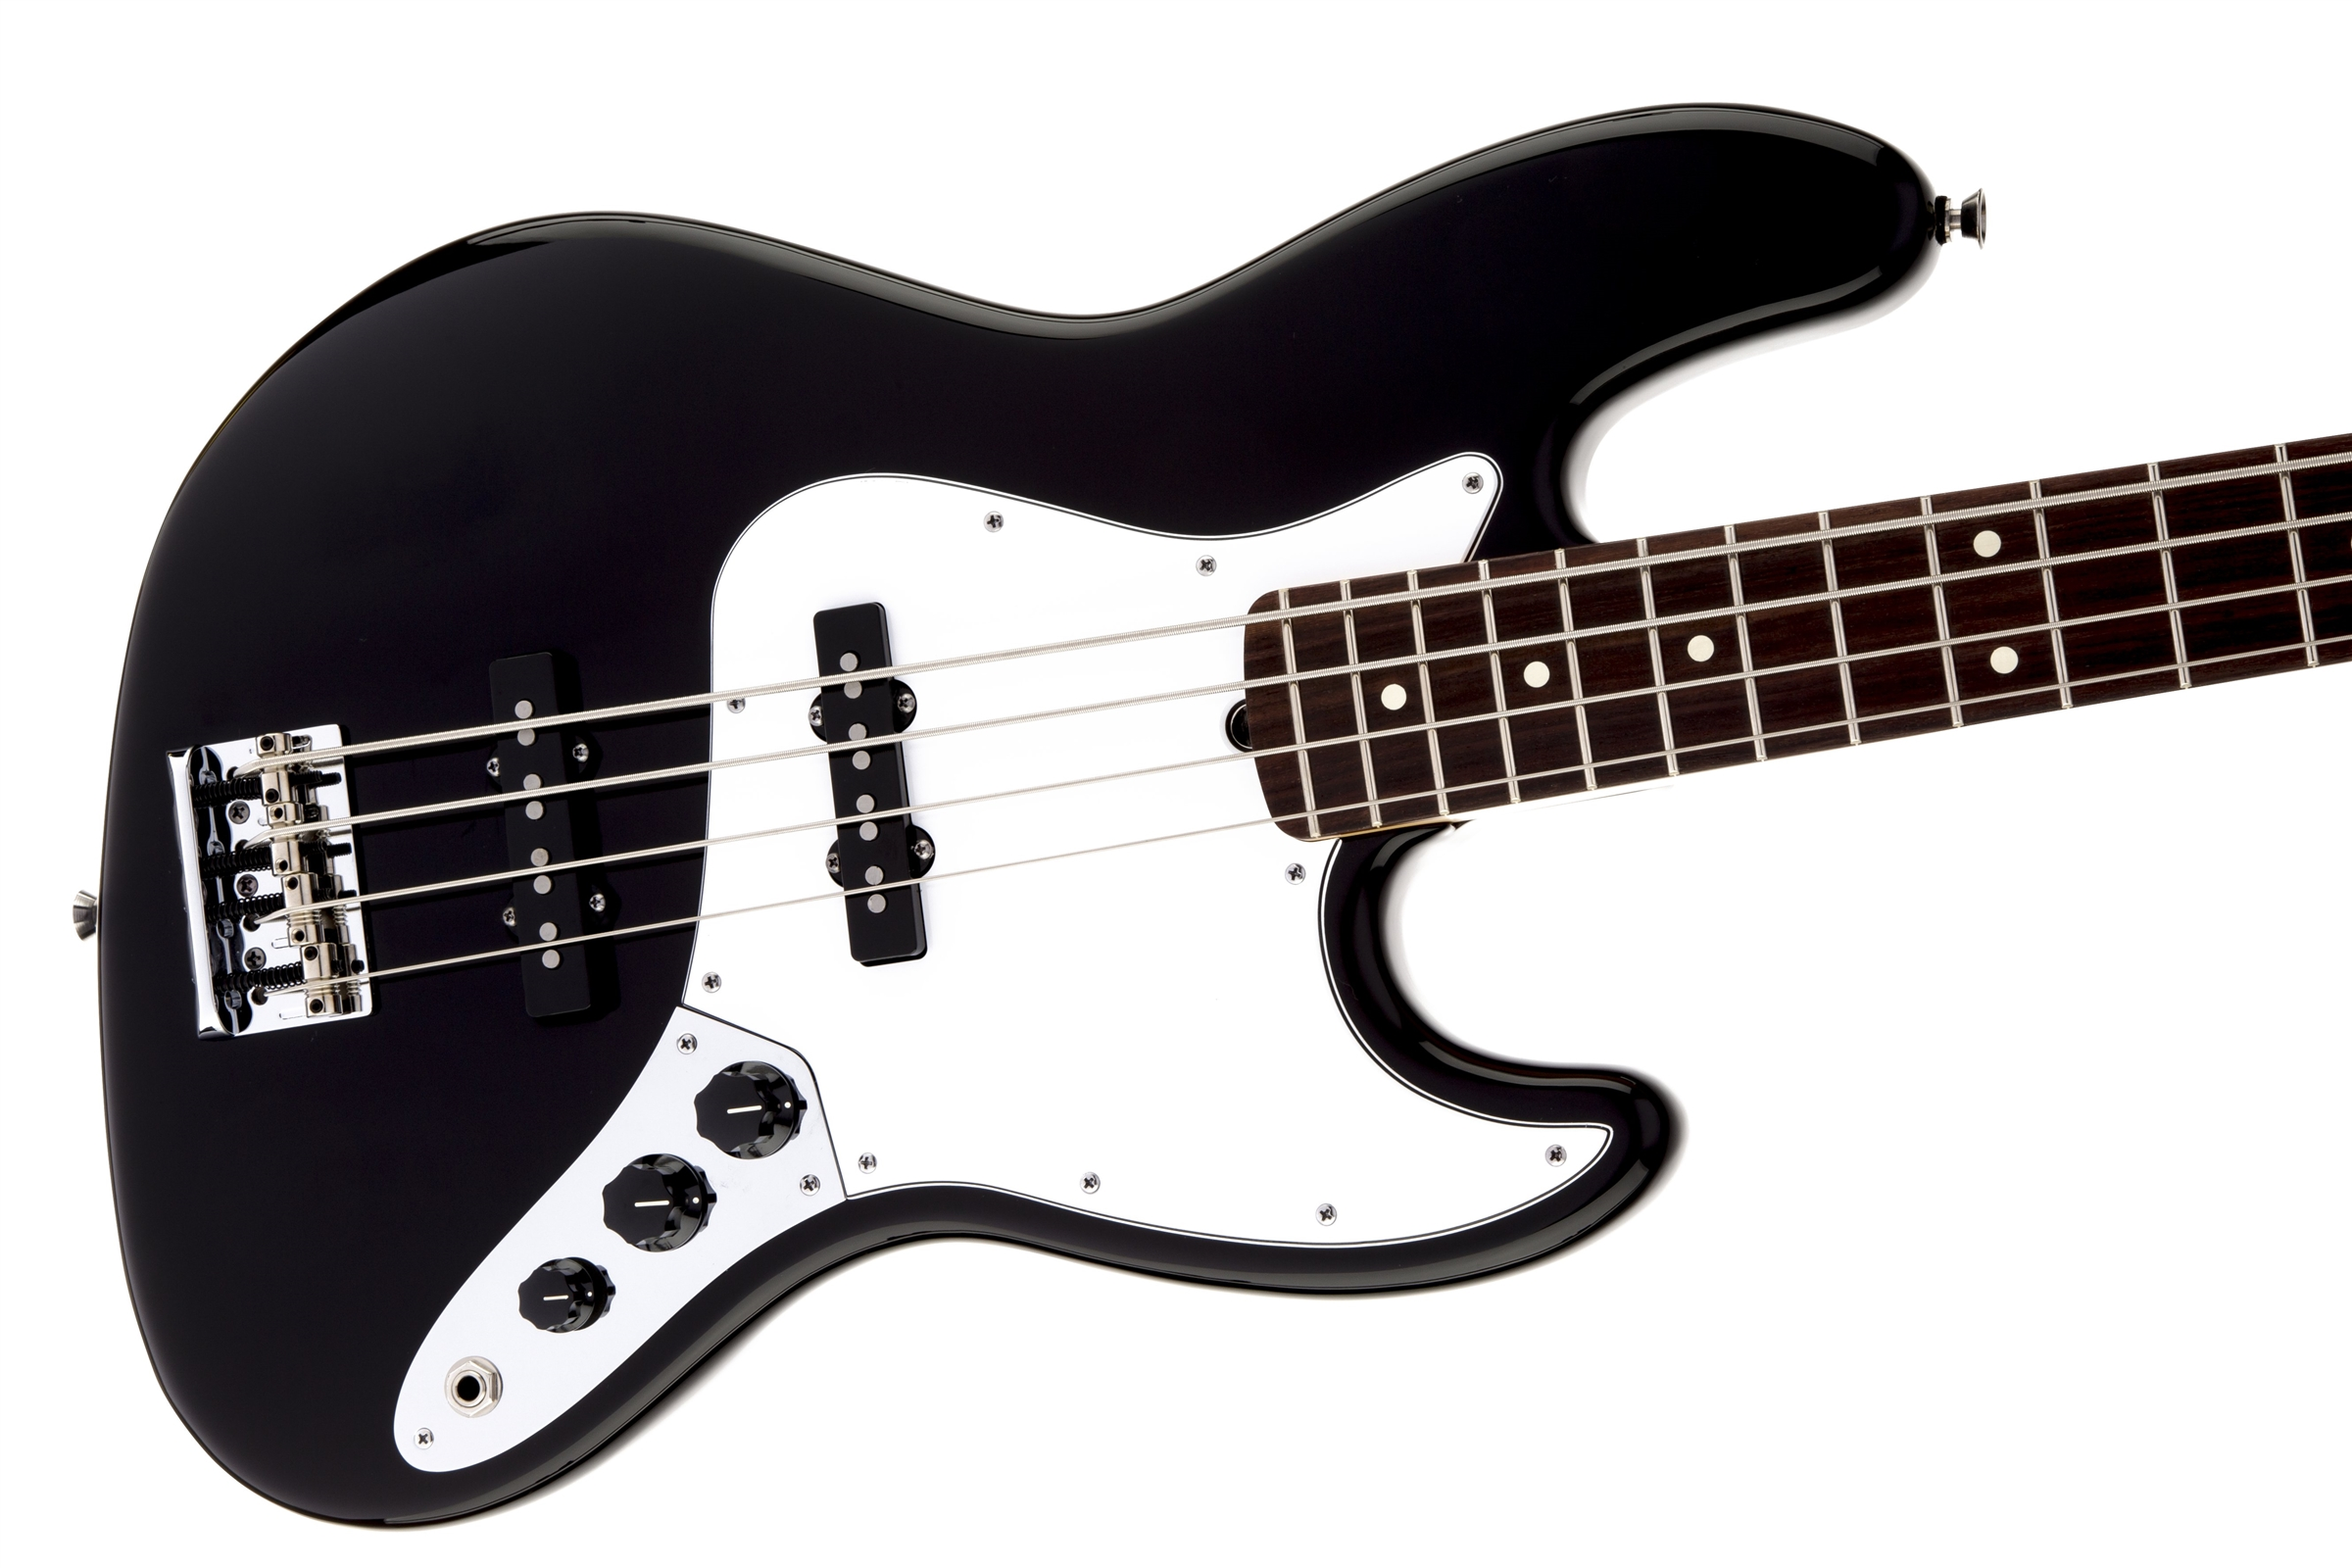 Fender American Standard Jazz Bass® Black Rosewood Fingerboard Electric Bass Guitar